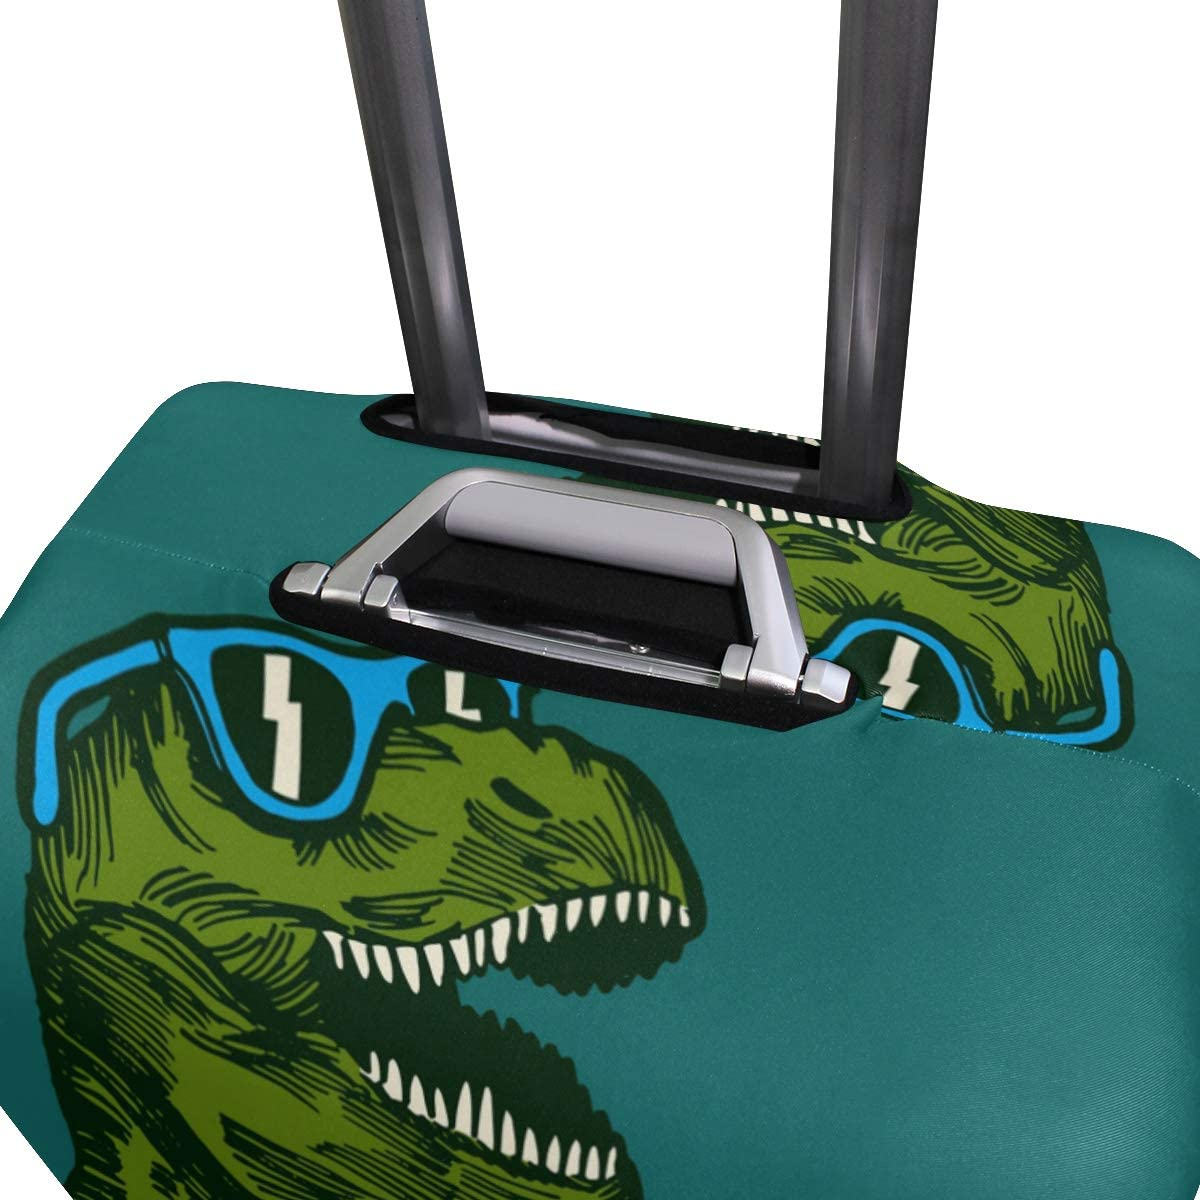 FOLPPLY Cute Cartoon Dinosaur Luggage Cover Baggage Suitcase Travel Protector Fit for 18-32 Inch